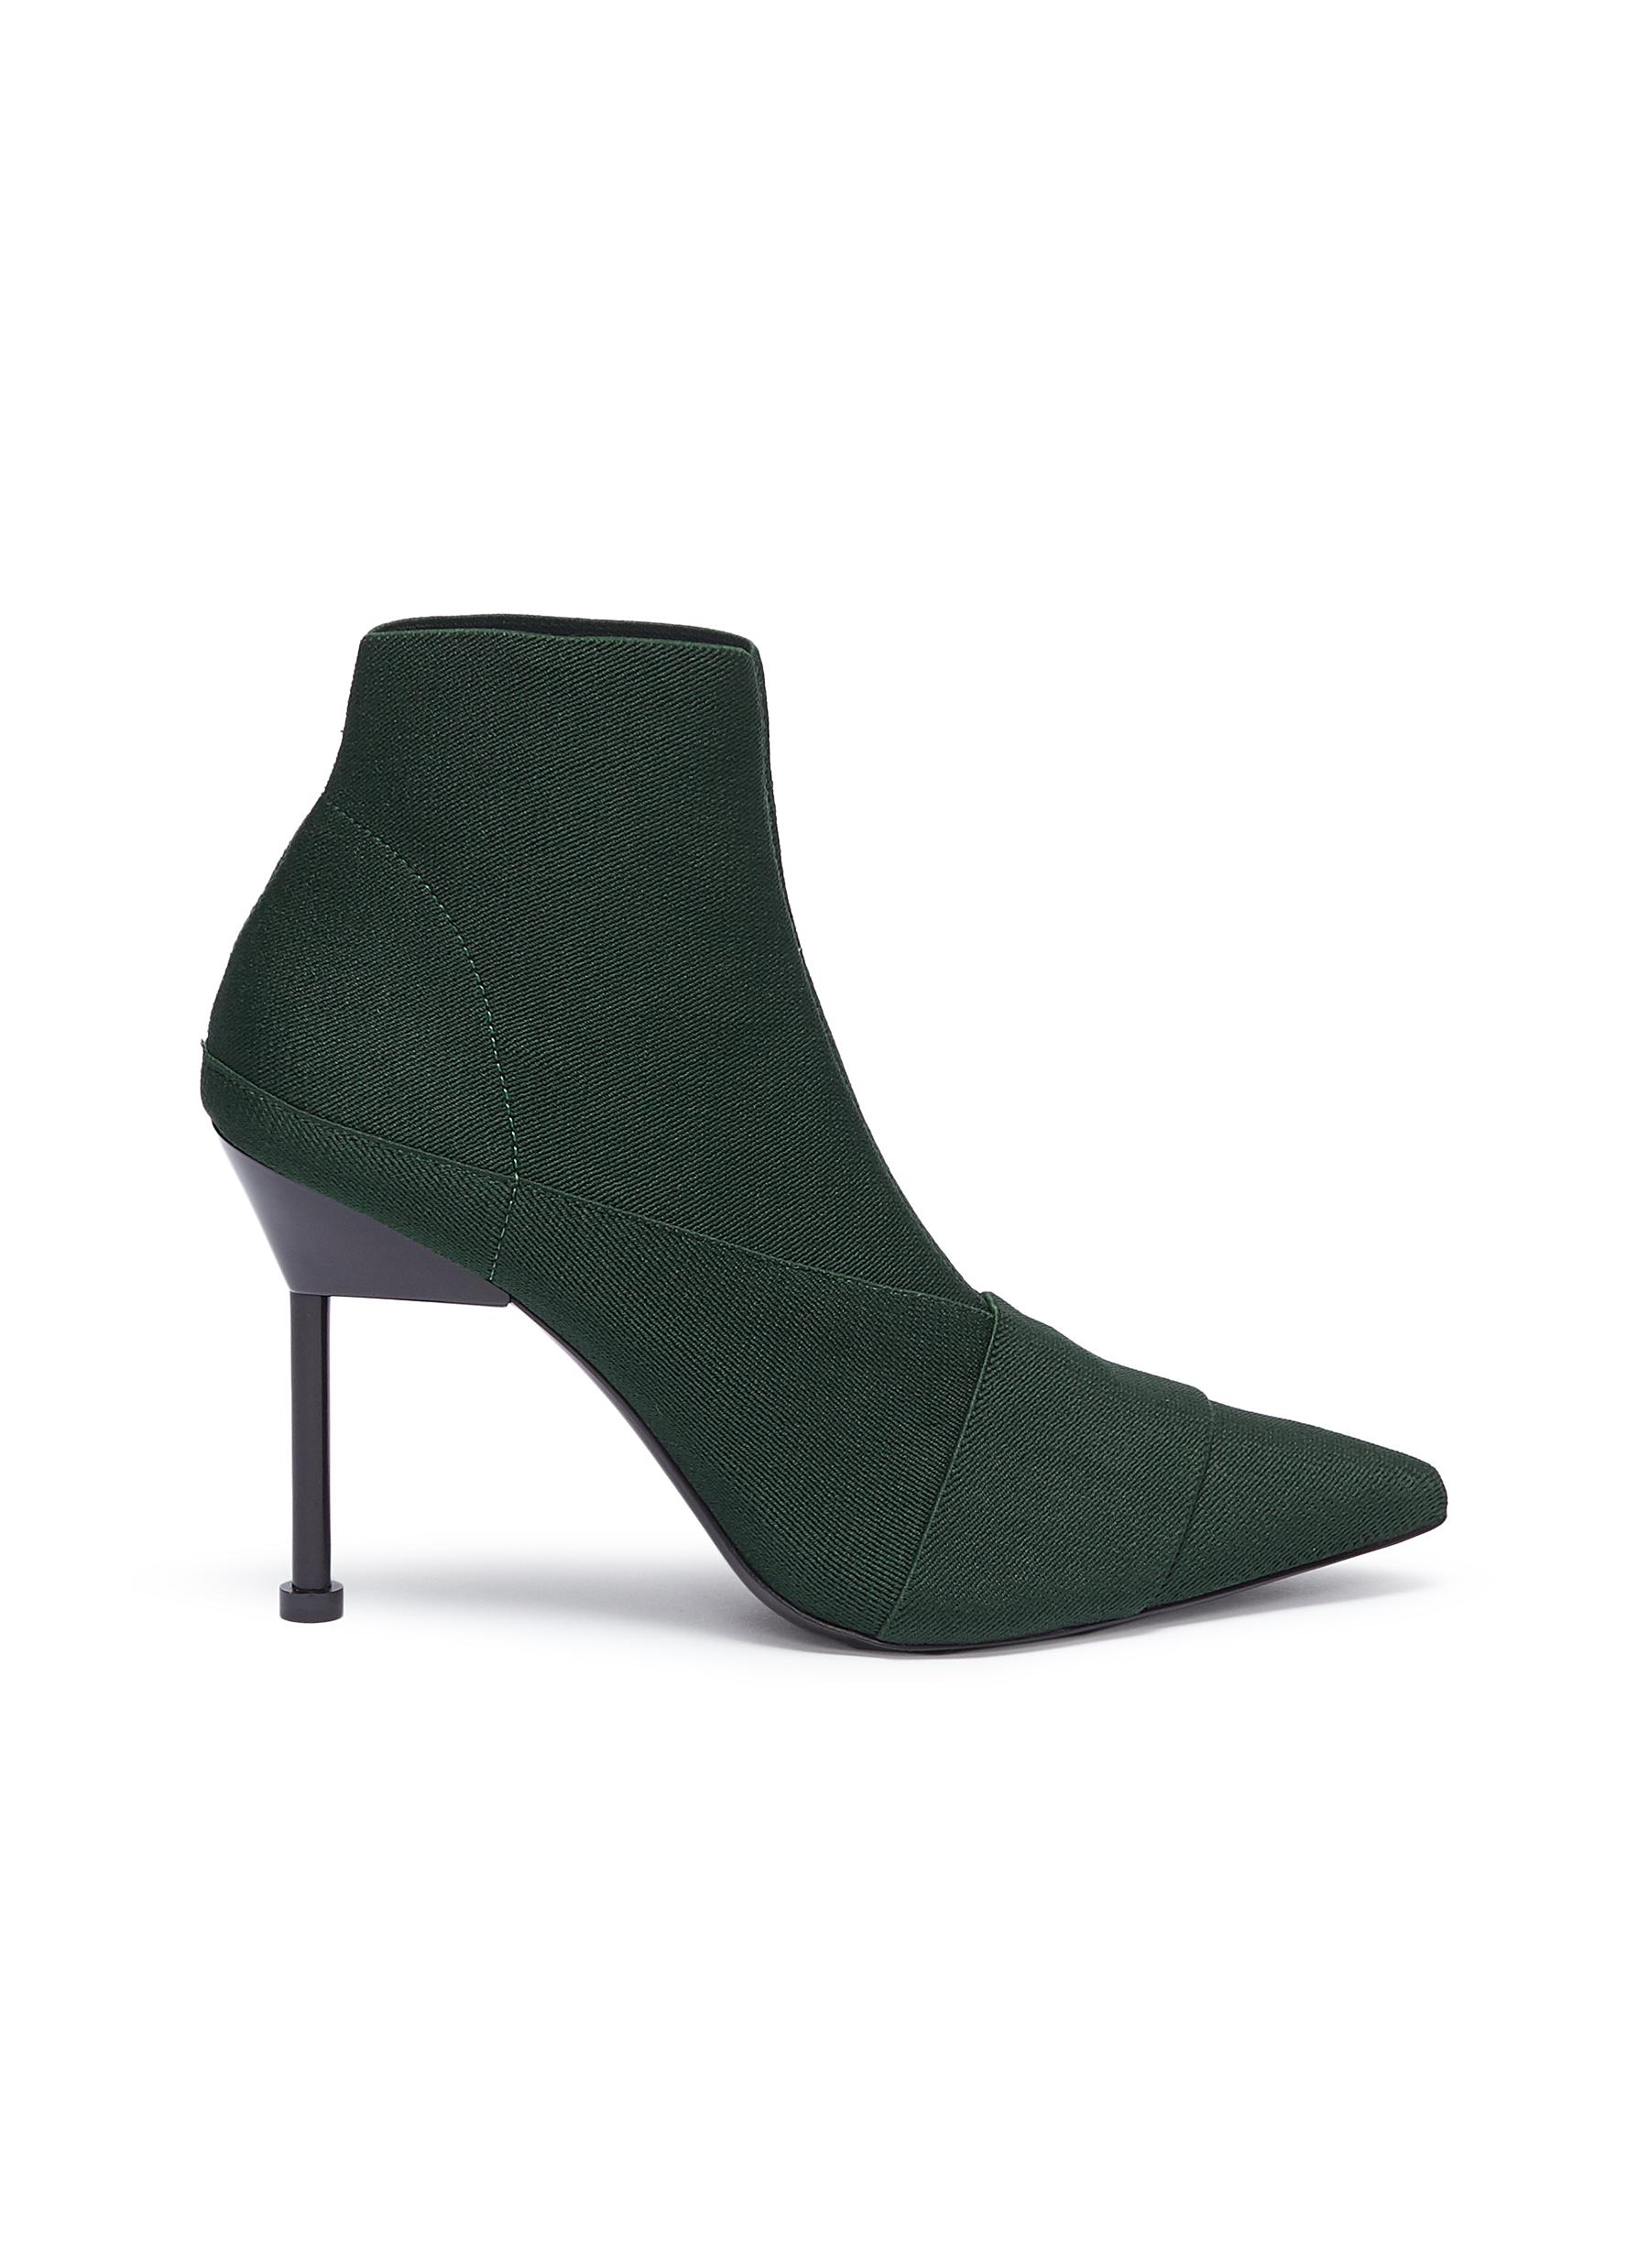 Kera High stretch ankle boots by Mercedes Castillo